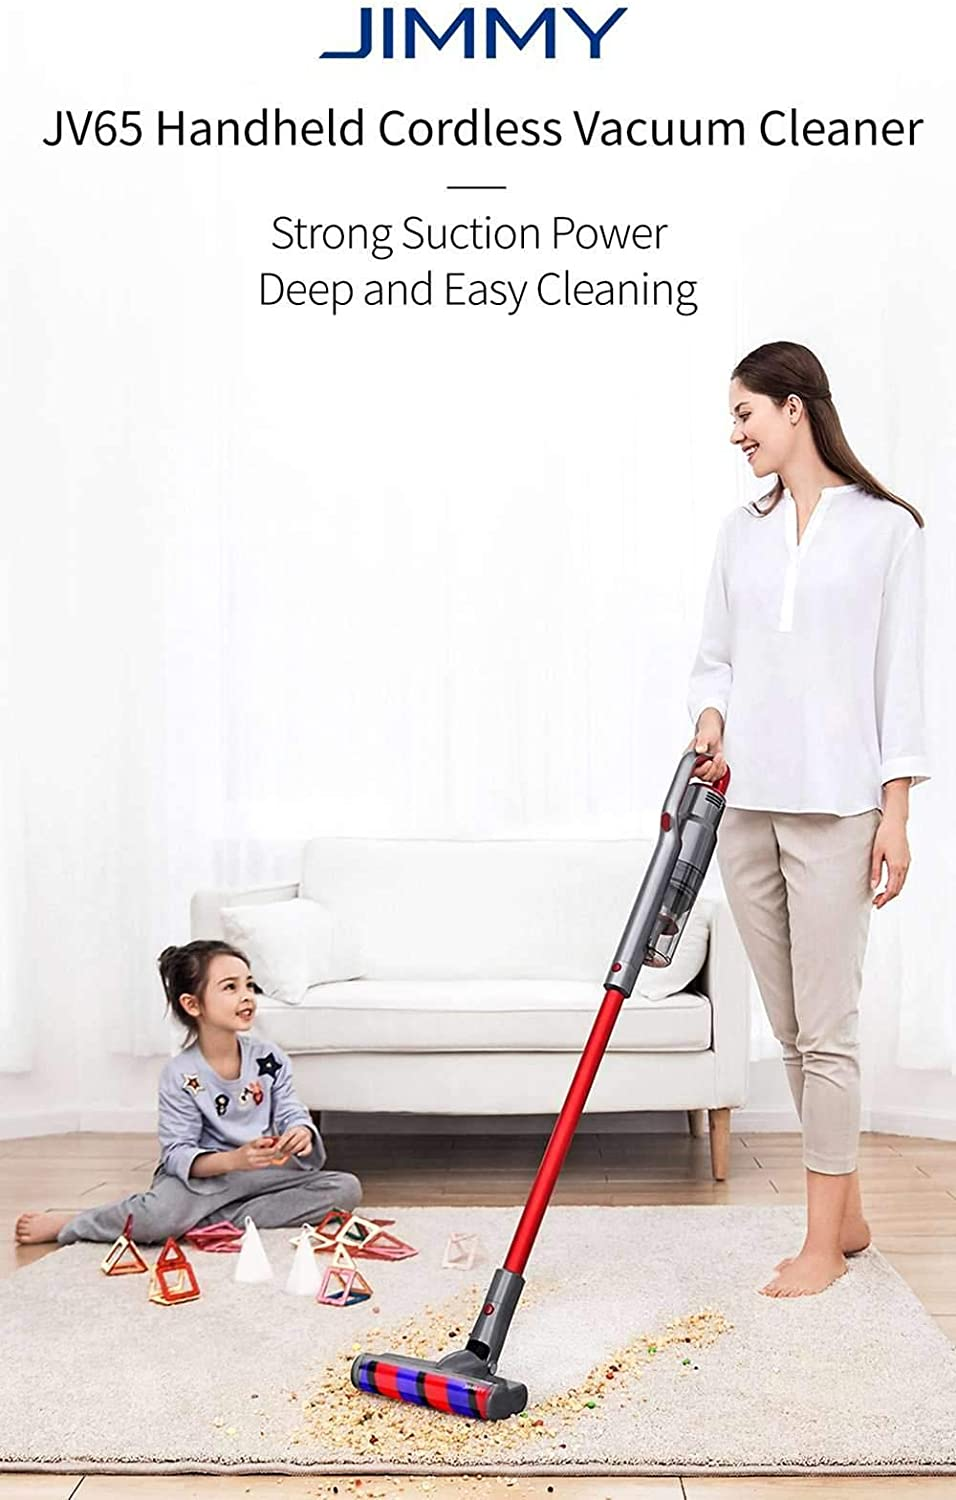 JIMMY JV65 Cordless Stick Vacuum Cleaner – Red